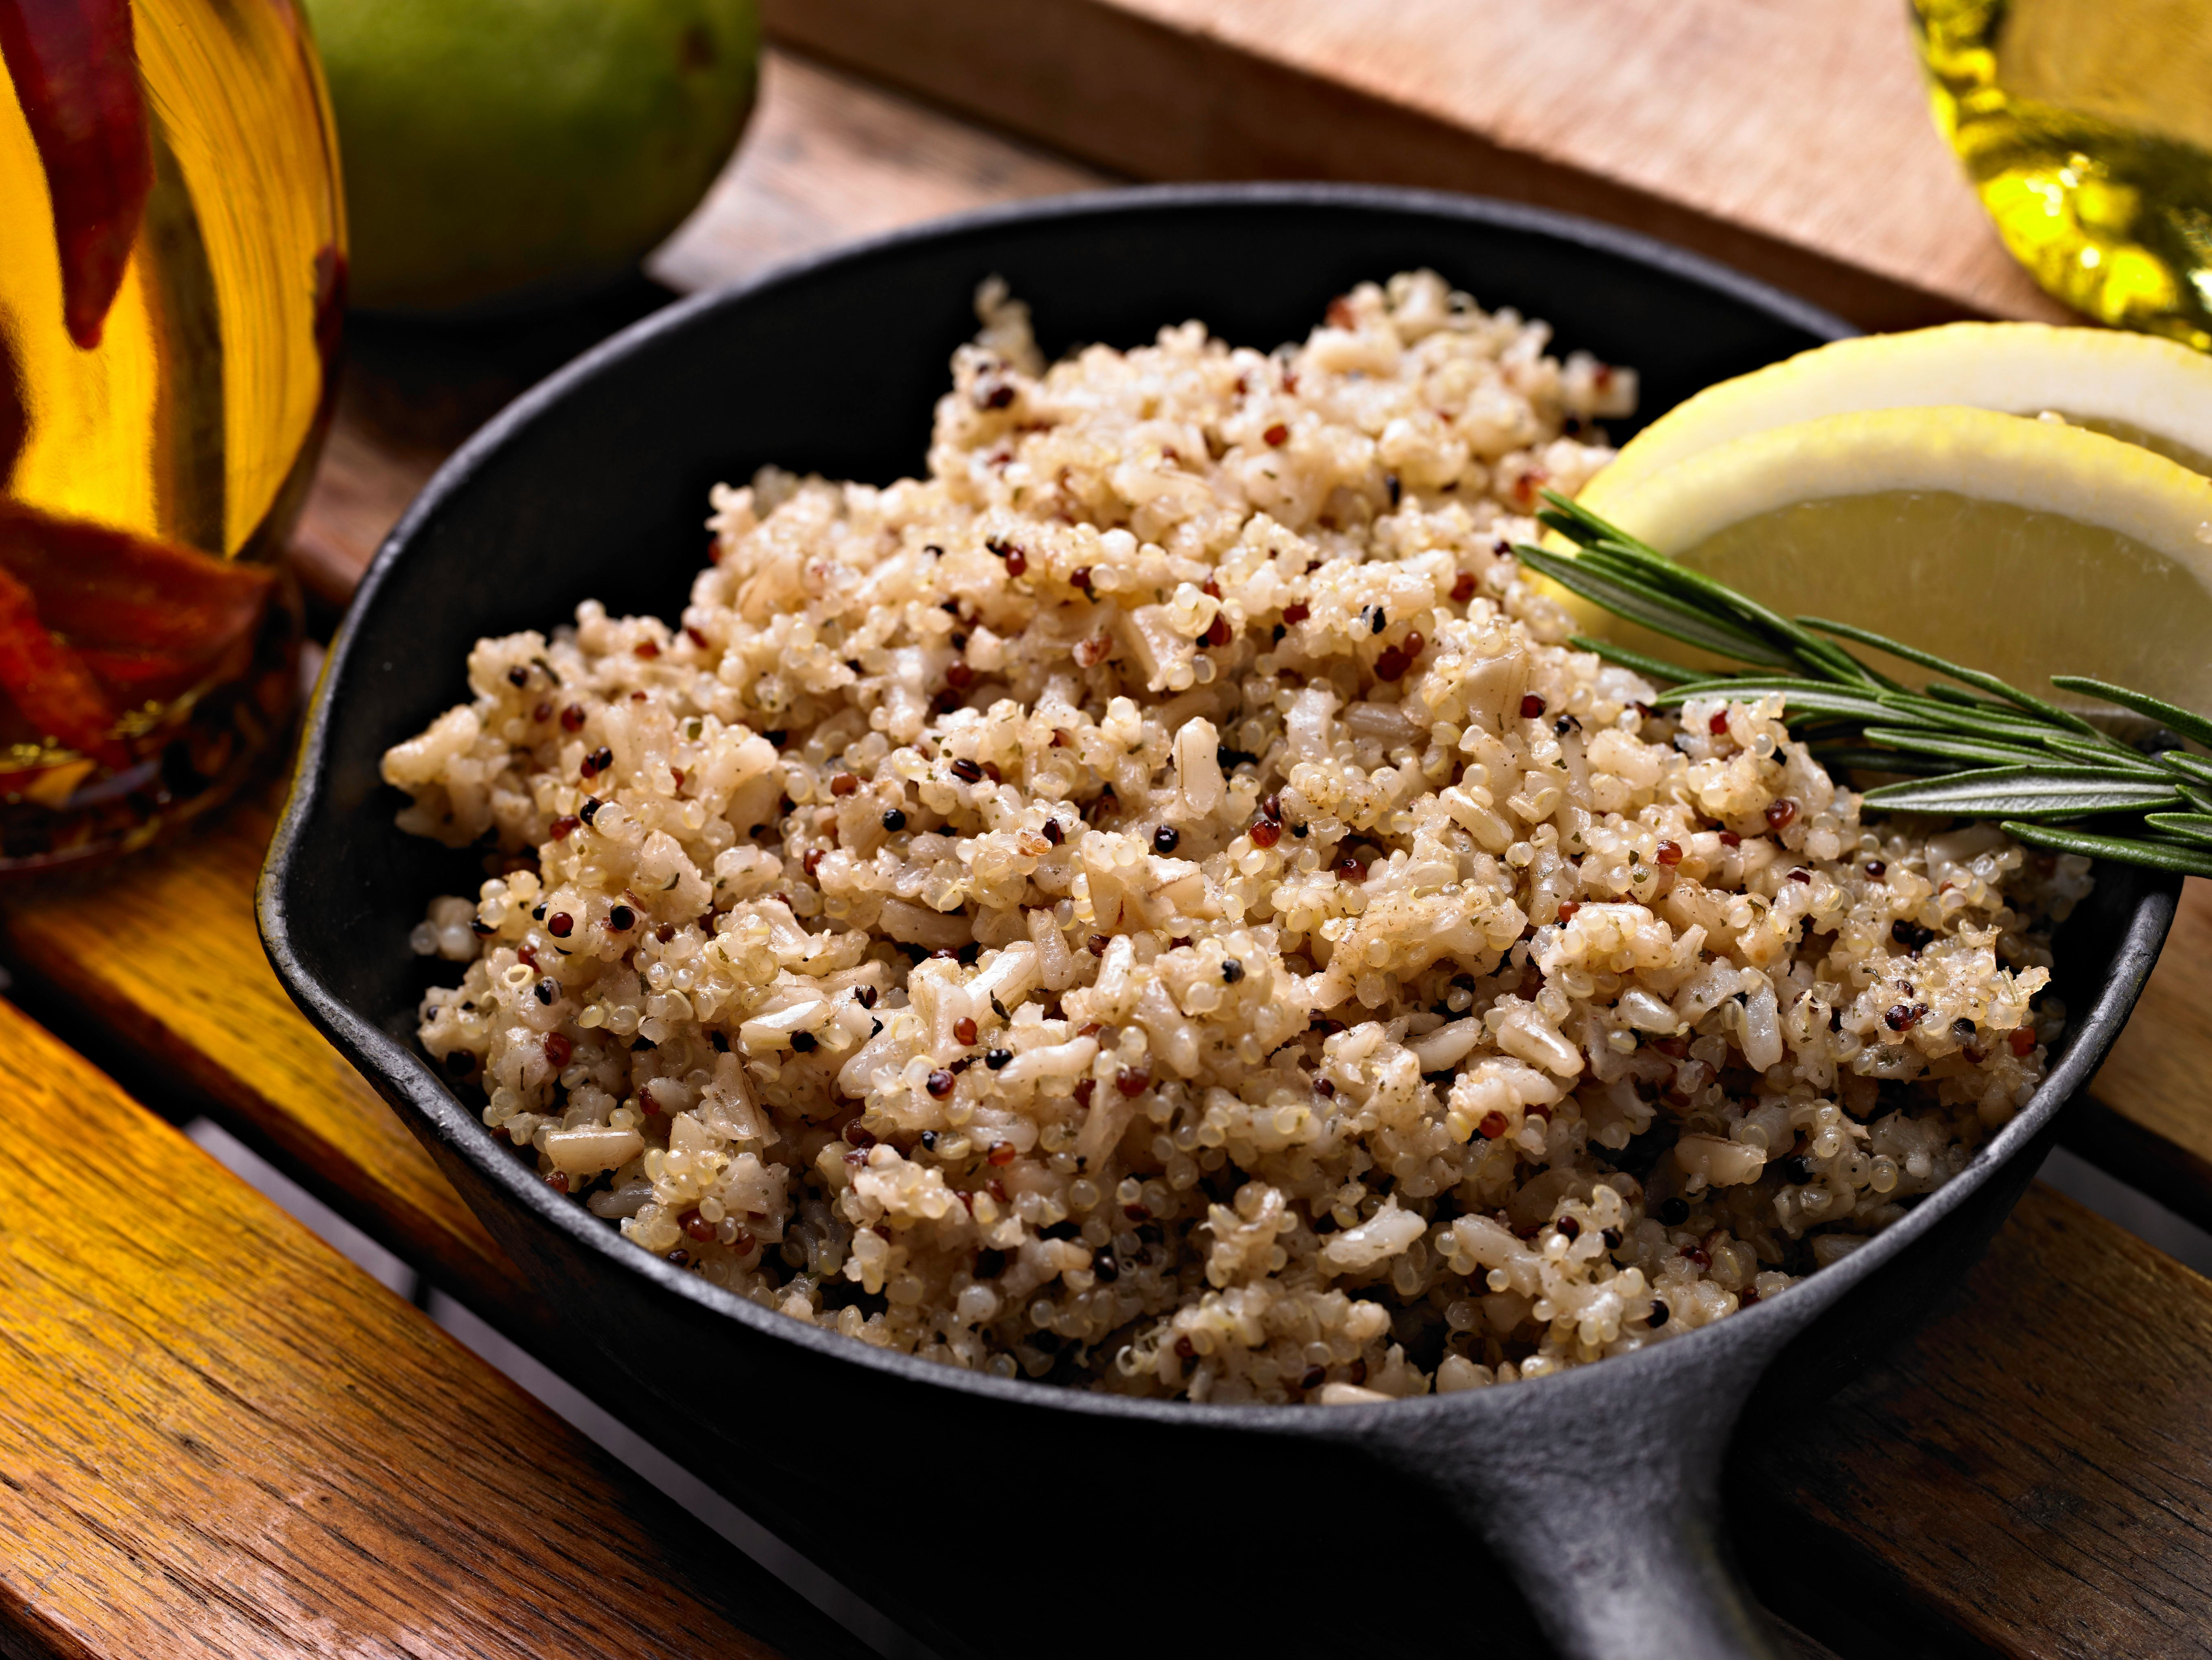 How Trendy Quinoa Could Help Solve Food